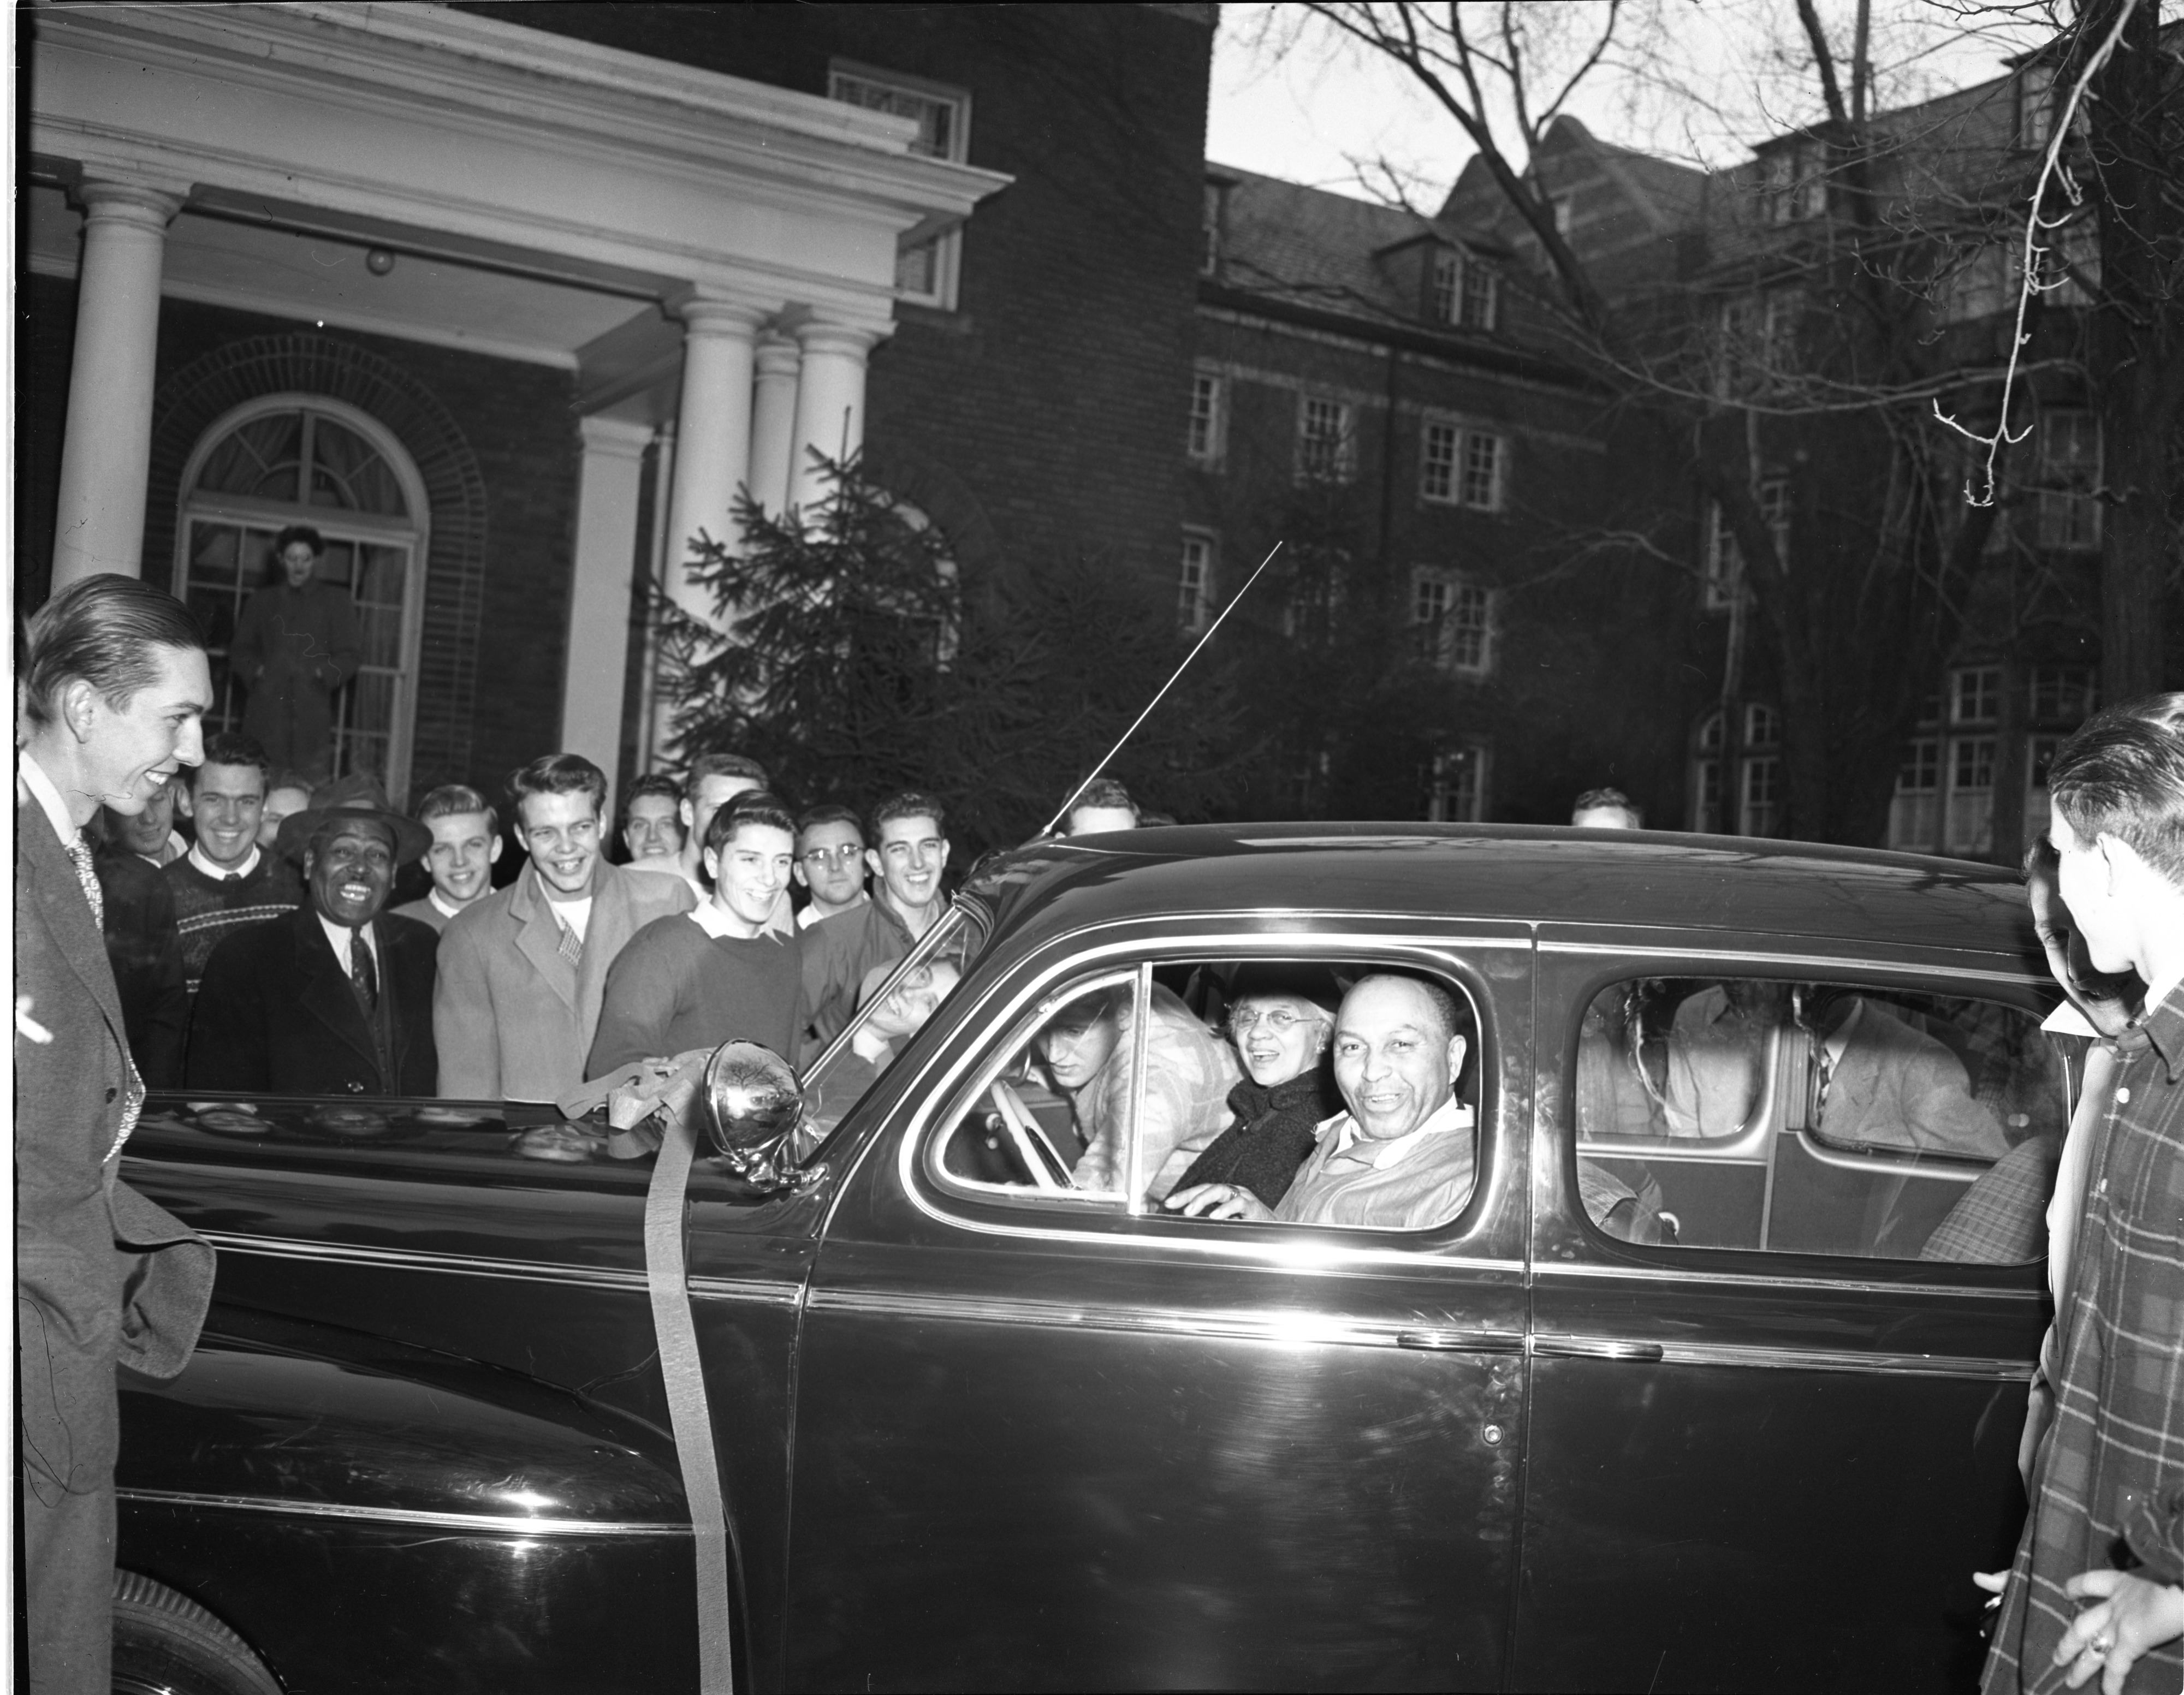 Sparky Harrison Receives A New Car As A Christmas Gift From Sigma Chi Fraternity, December 1946 image